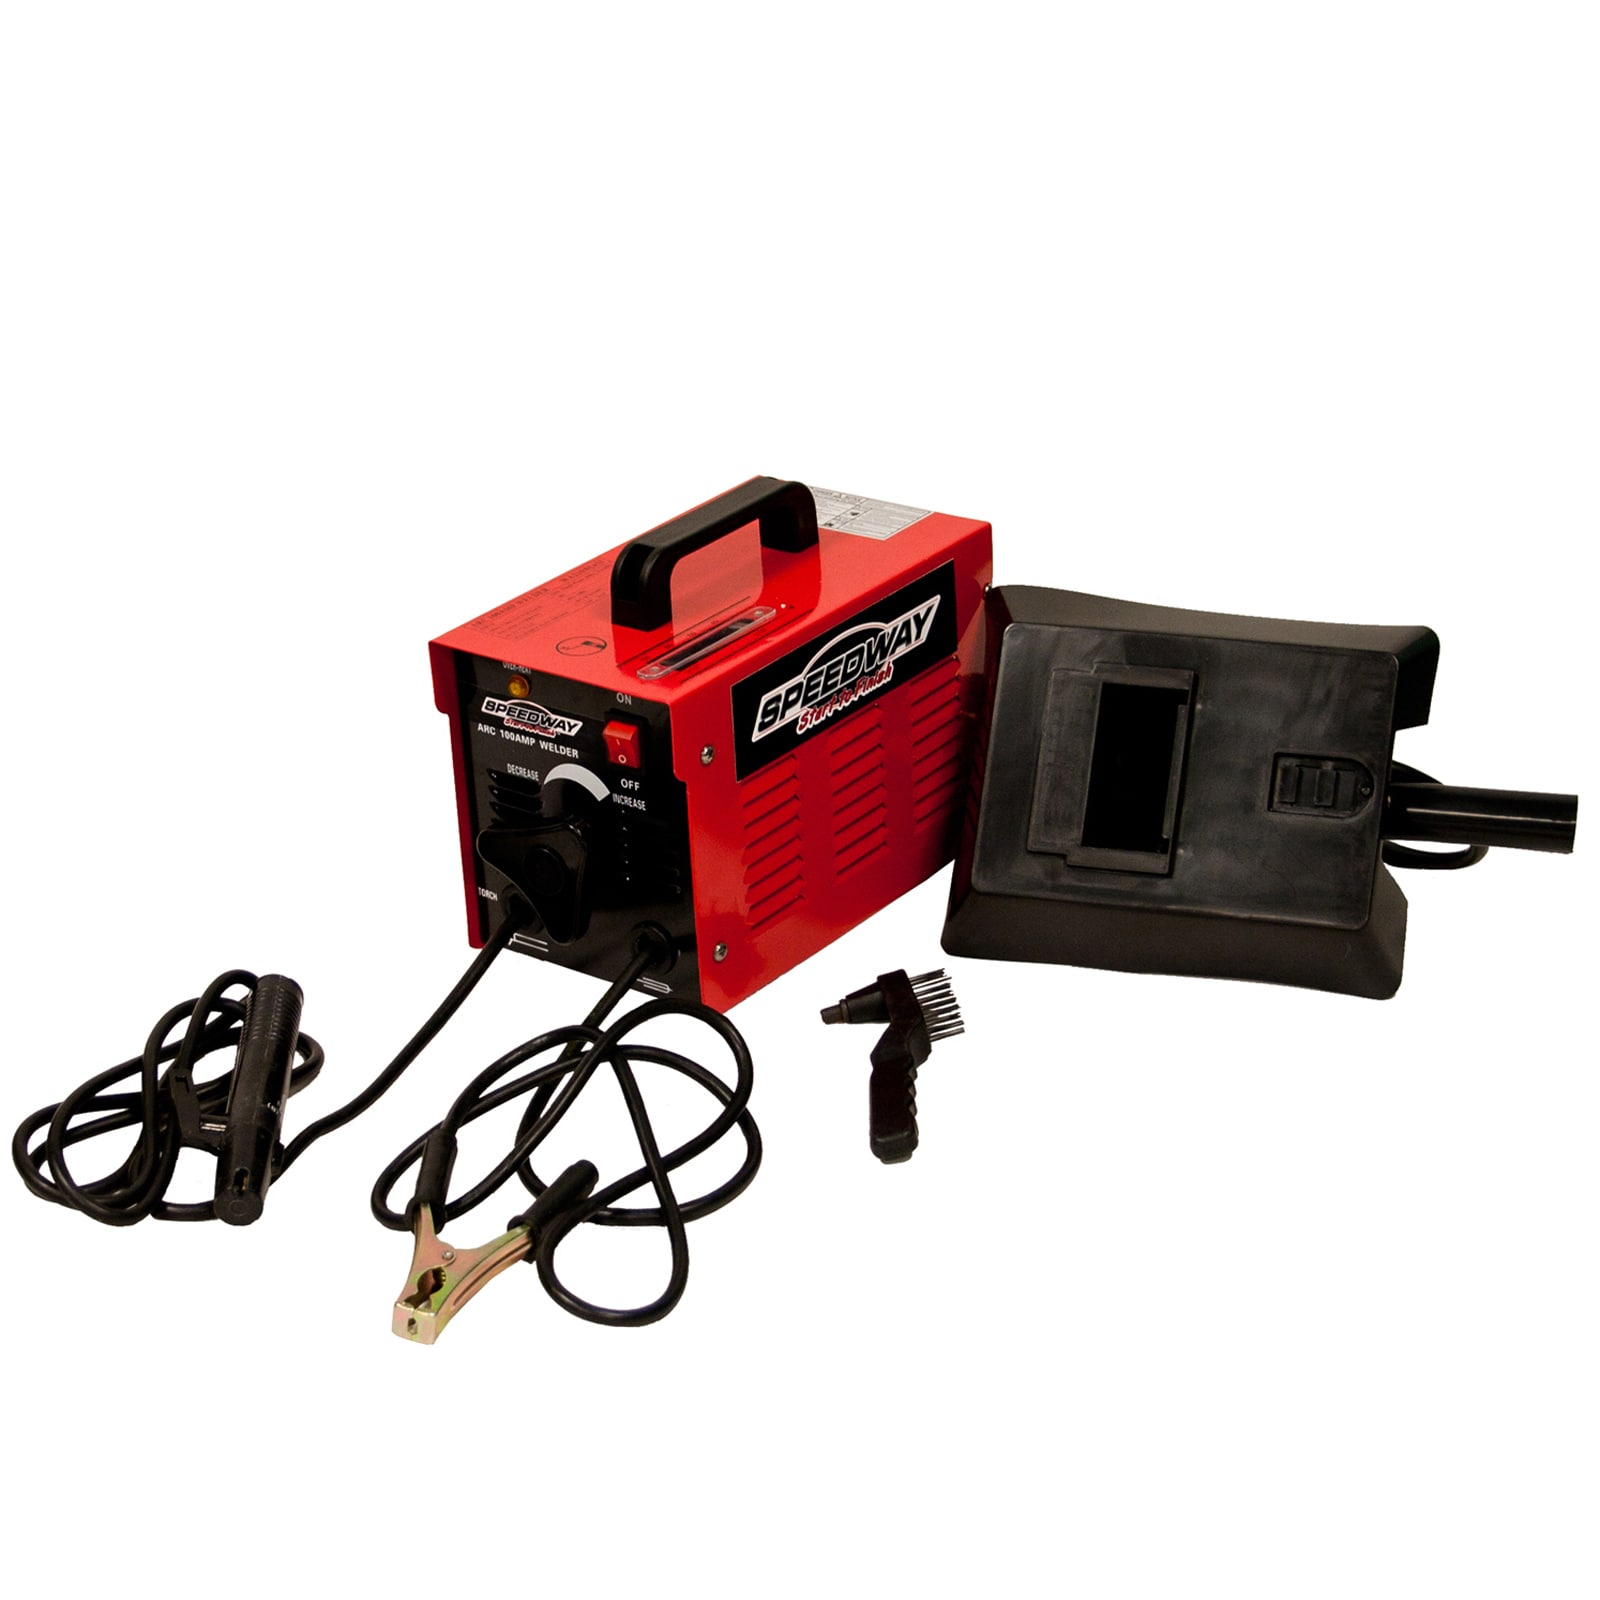 Speedway 220 Volt Single Phase Arc Welder by NATI LLC